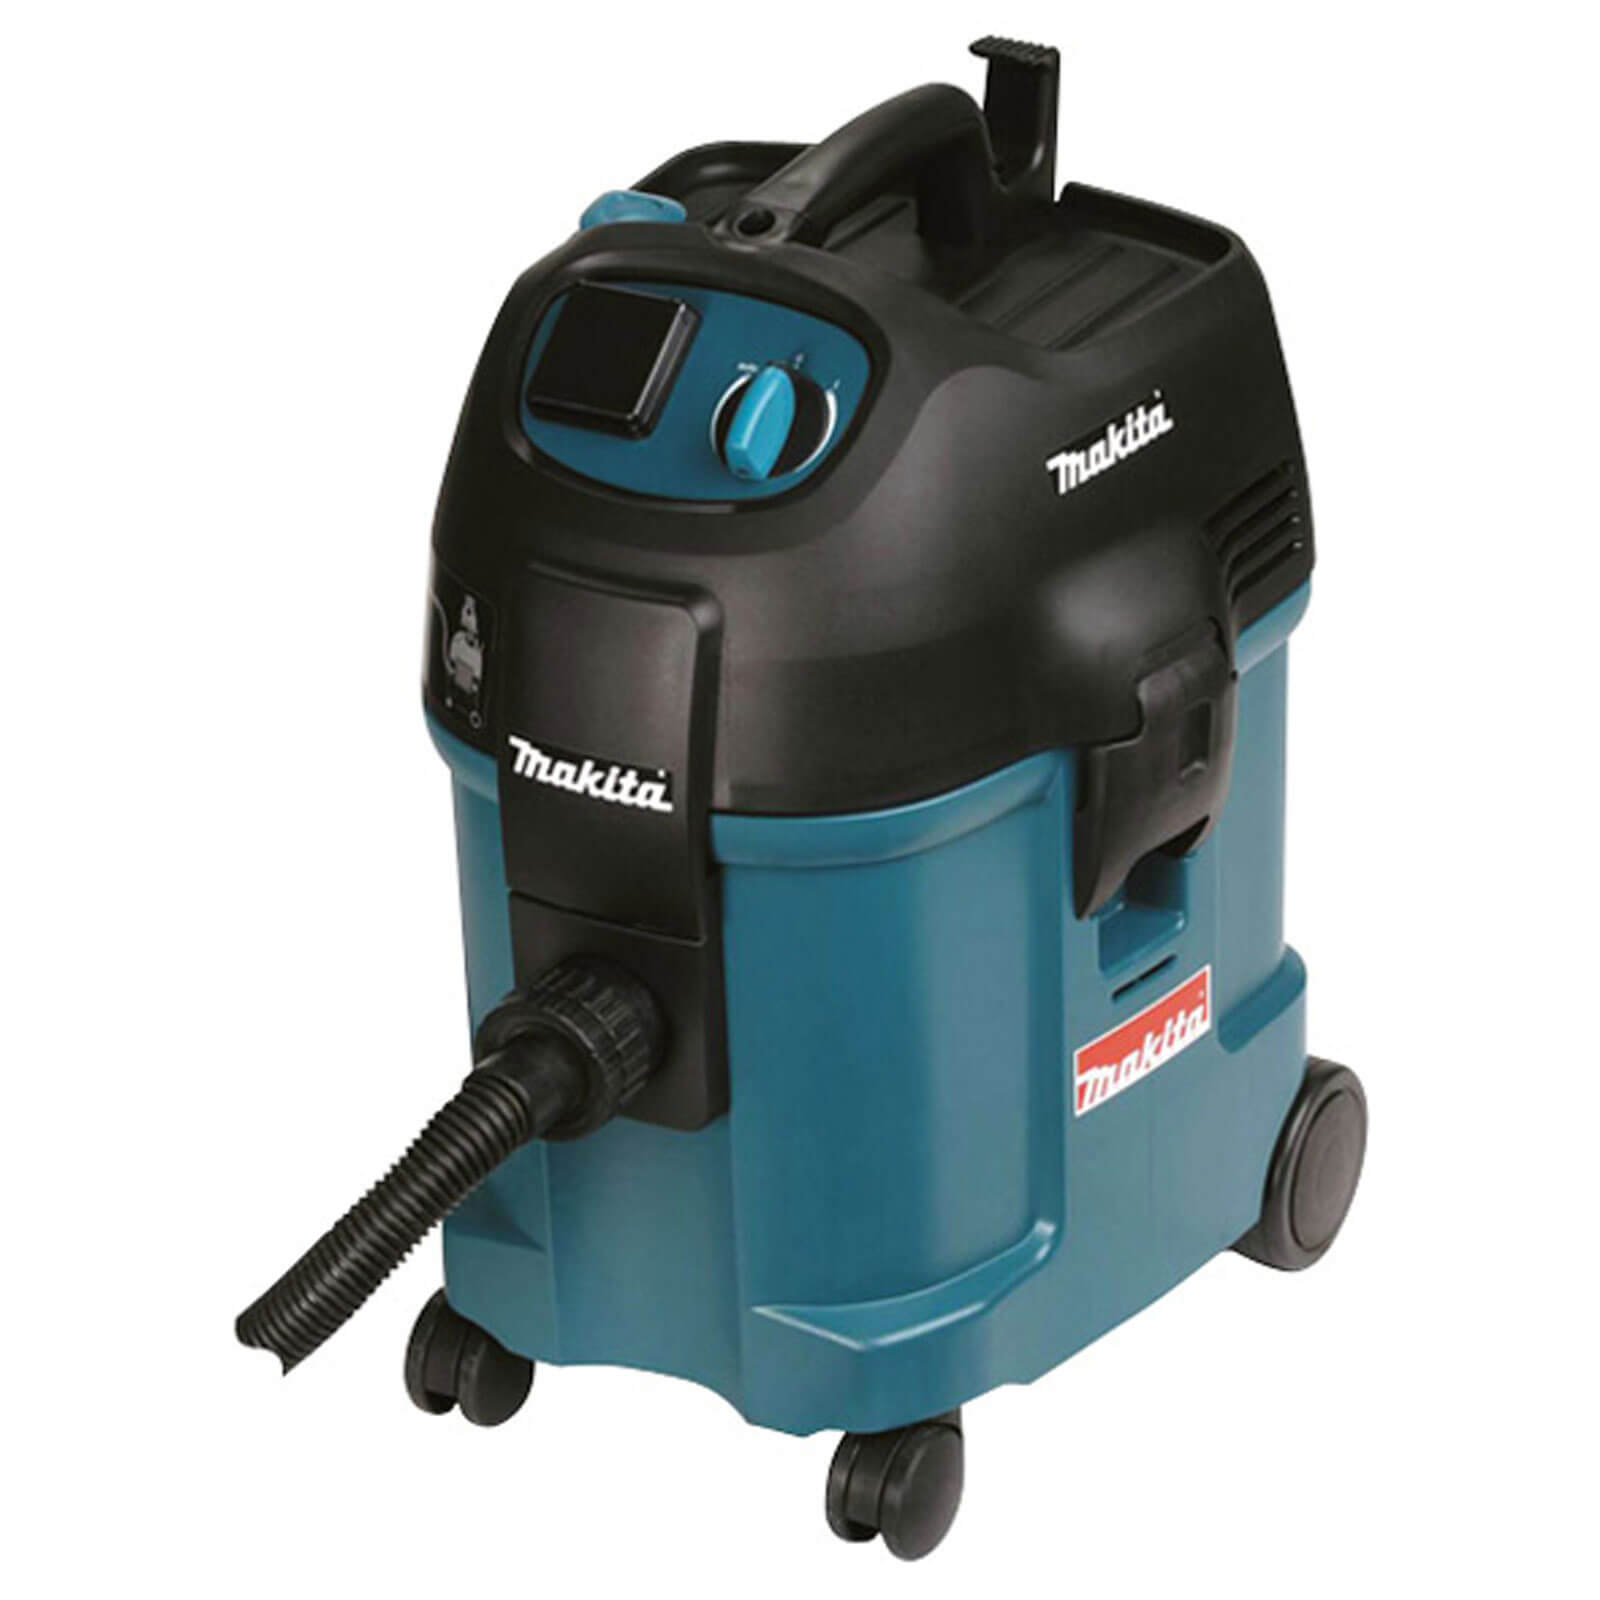 Image of Makita 446L Wet & Dry Dust Extractor with Power Tool Socket 1750w 27L 110v